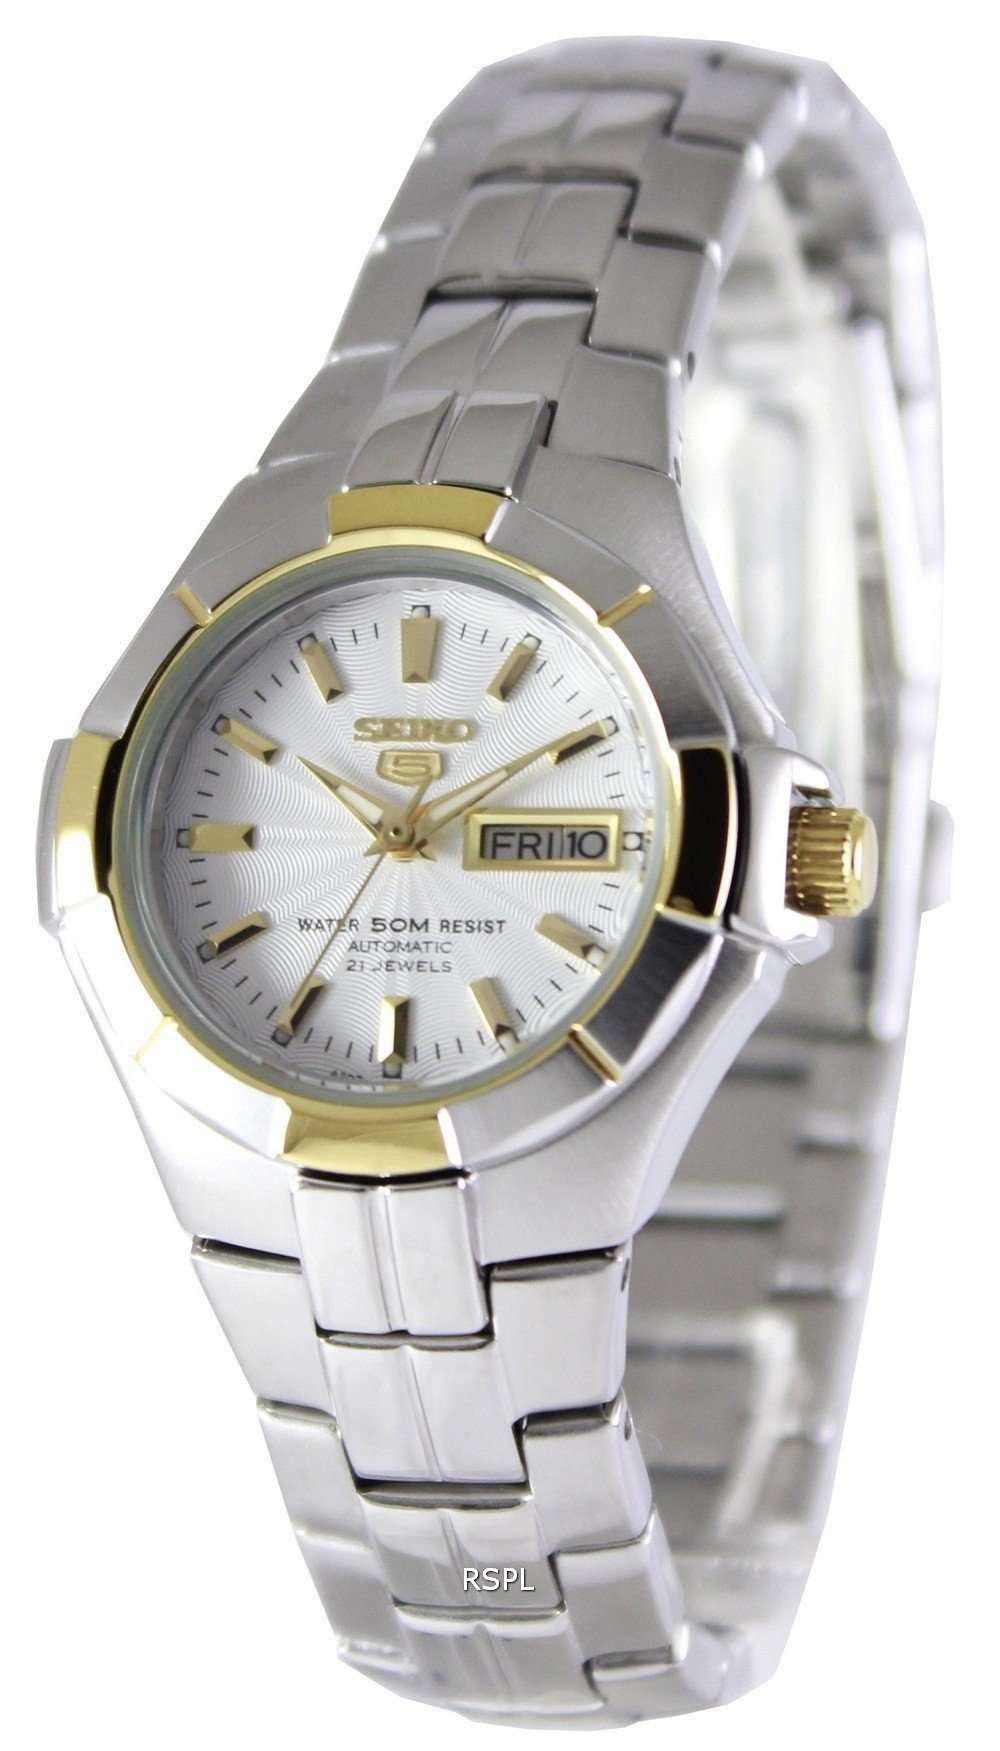 SEIKO SYMG86K1 Automatic Two-tone Stainless Steel Watch for Women